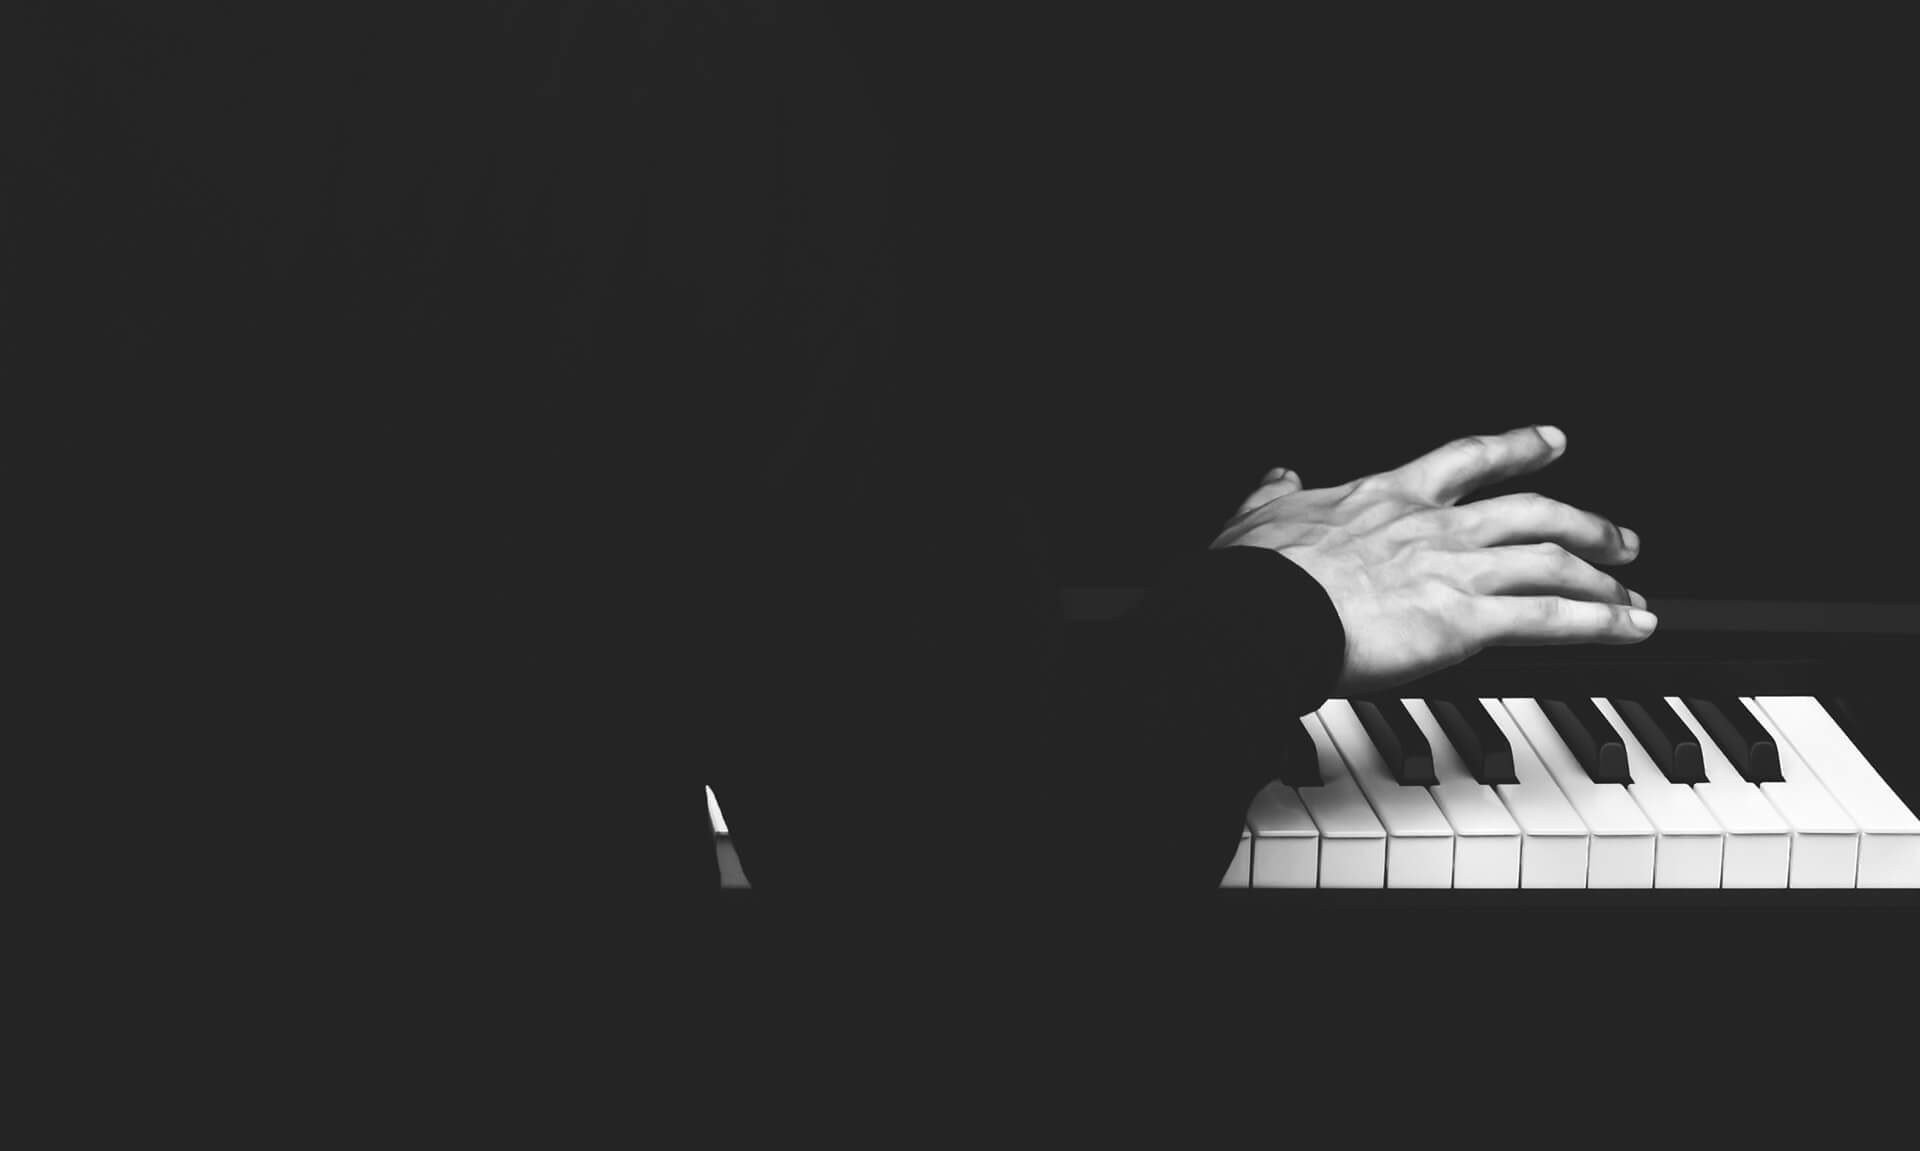 Gentleman playing the piano